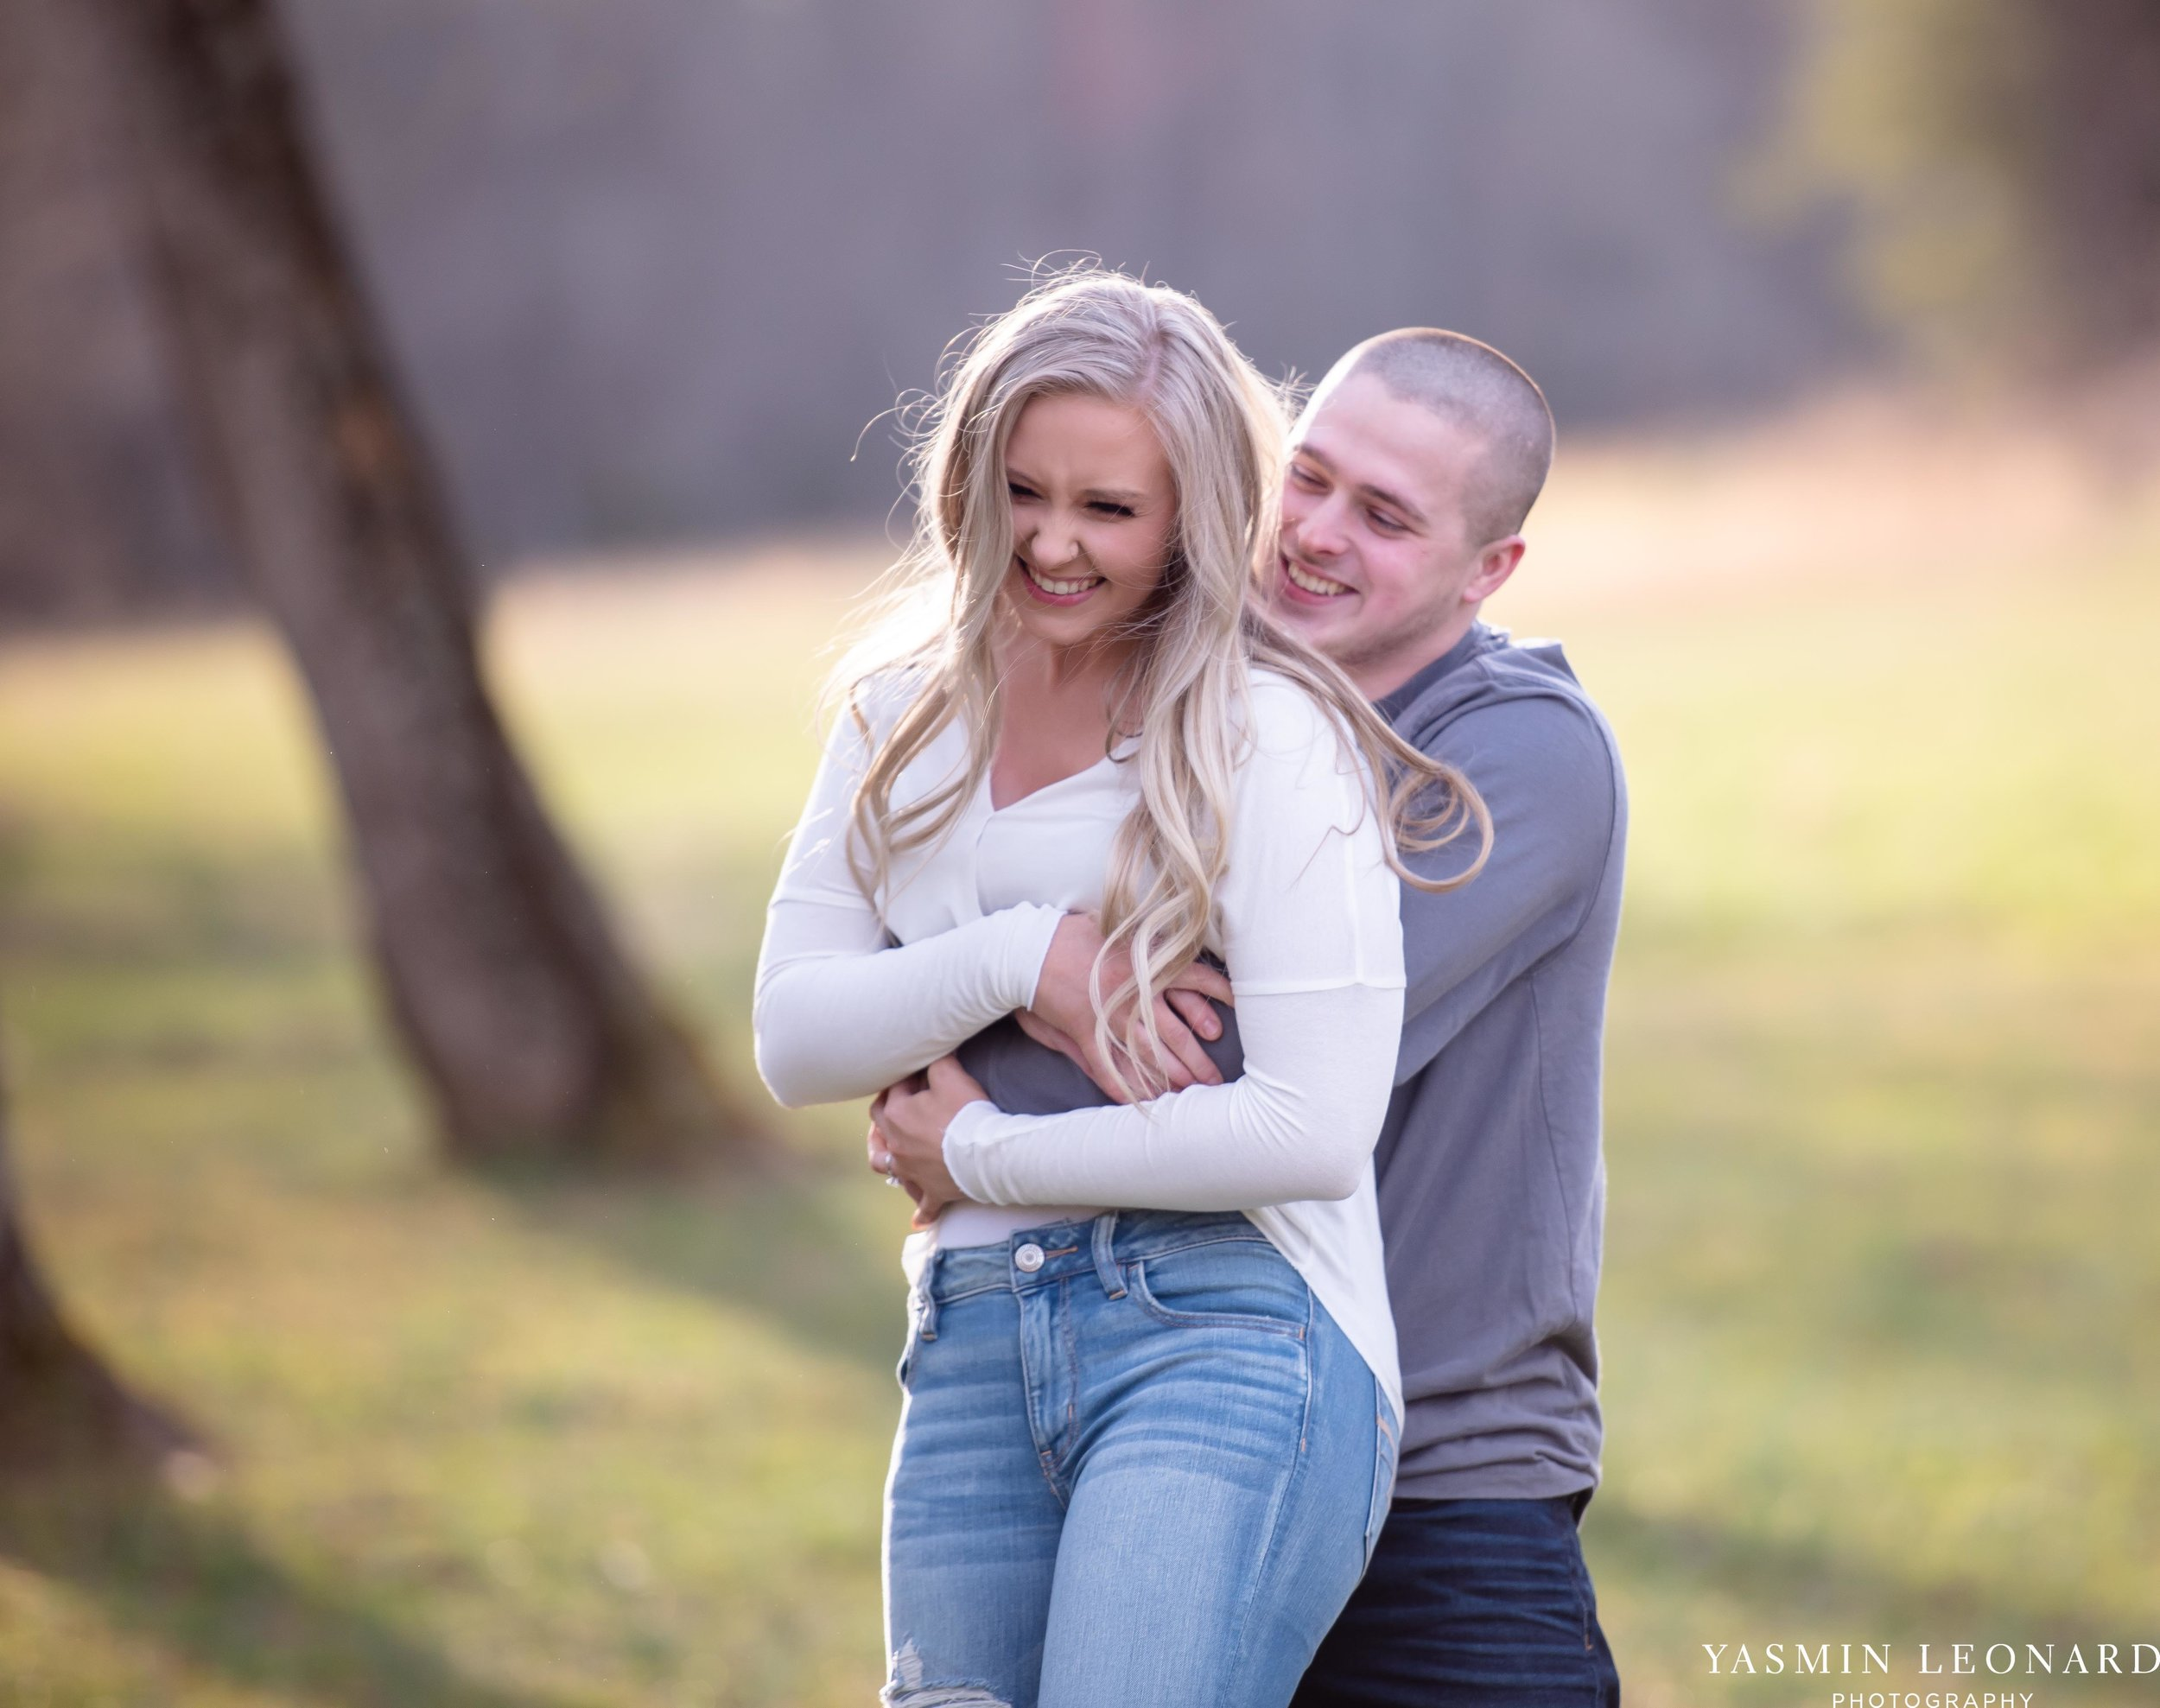 Luna Trail Engagement Session - NC Barns - NC Venues - NC Photographer - NC Country Wedding - Engagement Session Ideas - Engagement Photos - E-Session Photos - Yasmin Leonard Photography-8.jpg